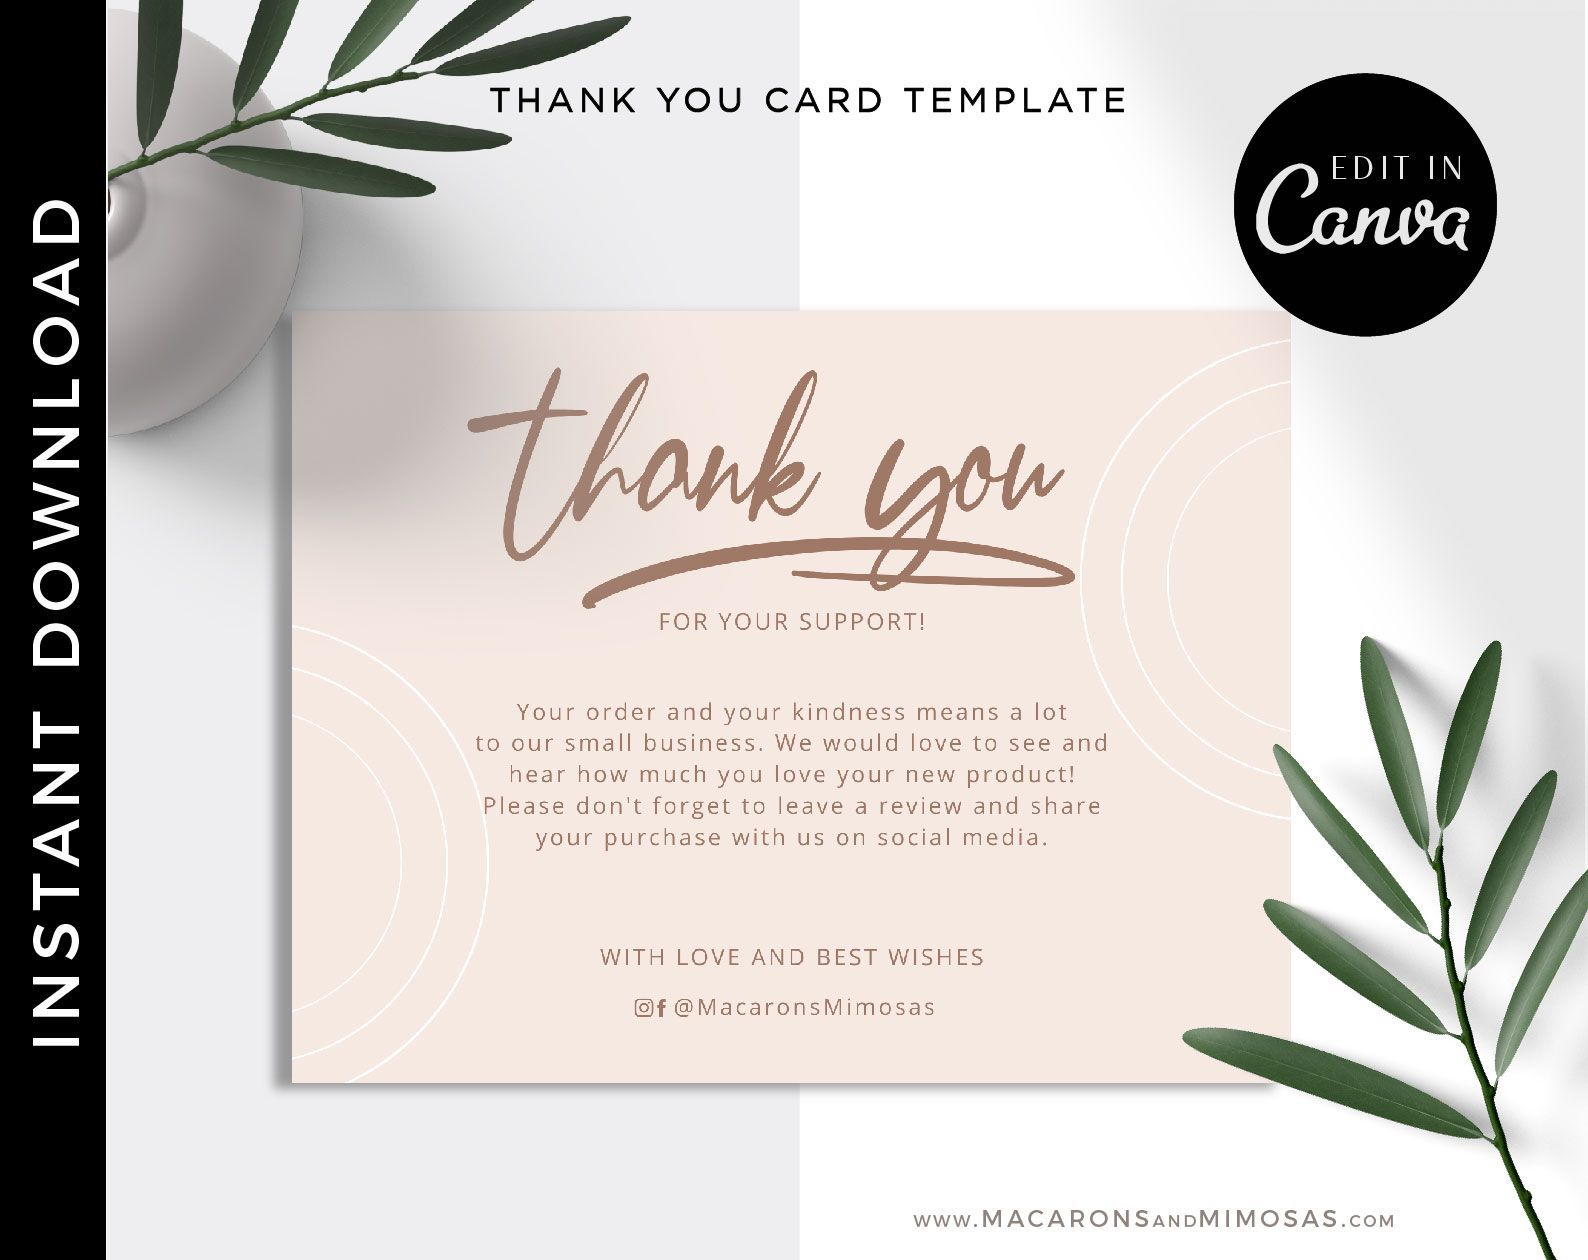 Violet Thank You Cards Macarons And Mimosas In 2021 Thank You Card Design Thank You Cards Business Thank You Cards